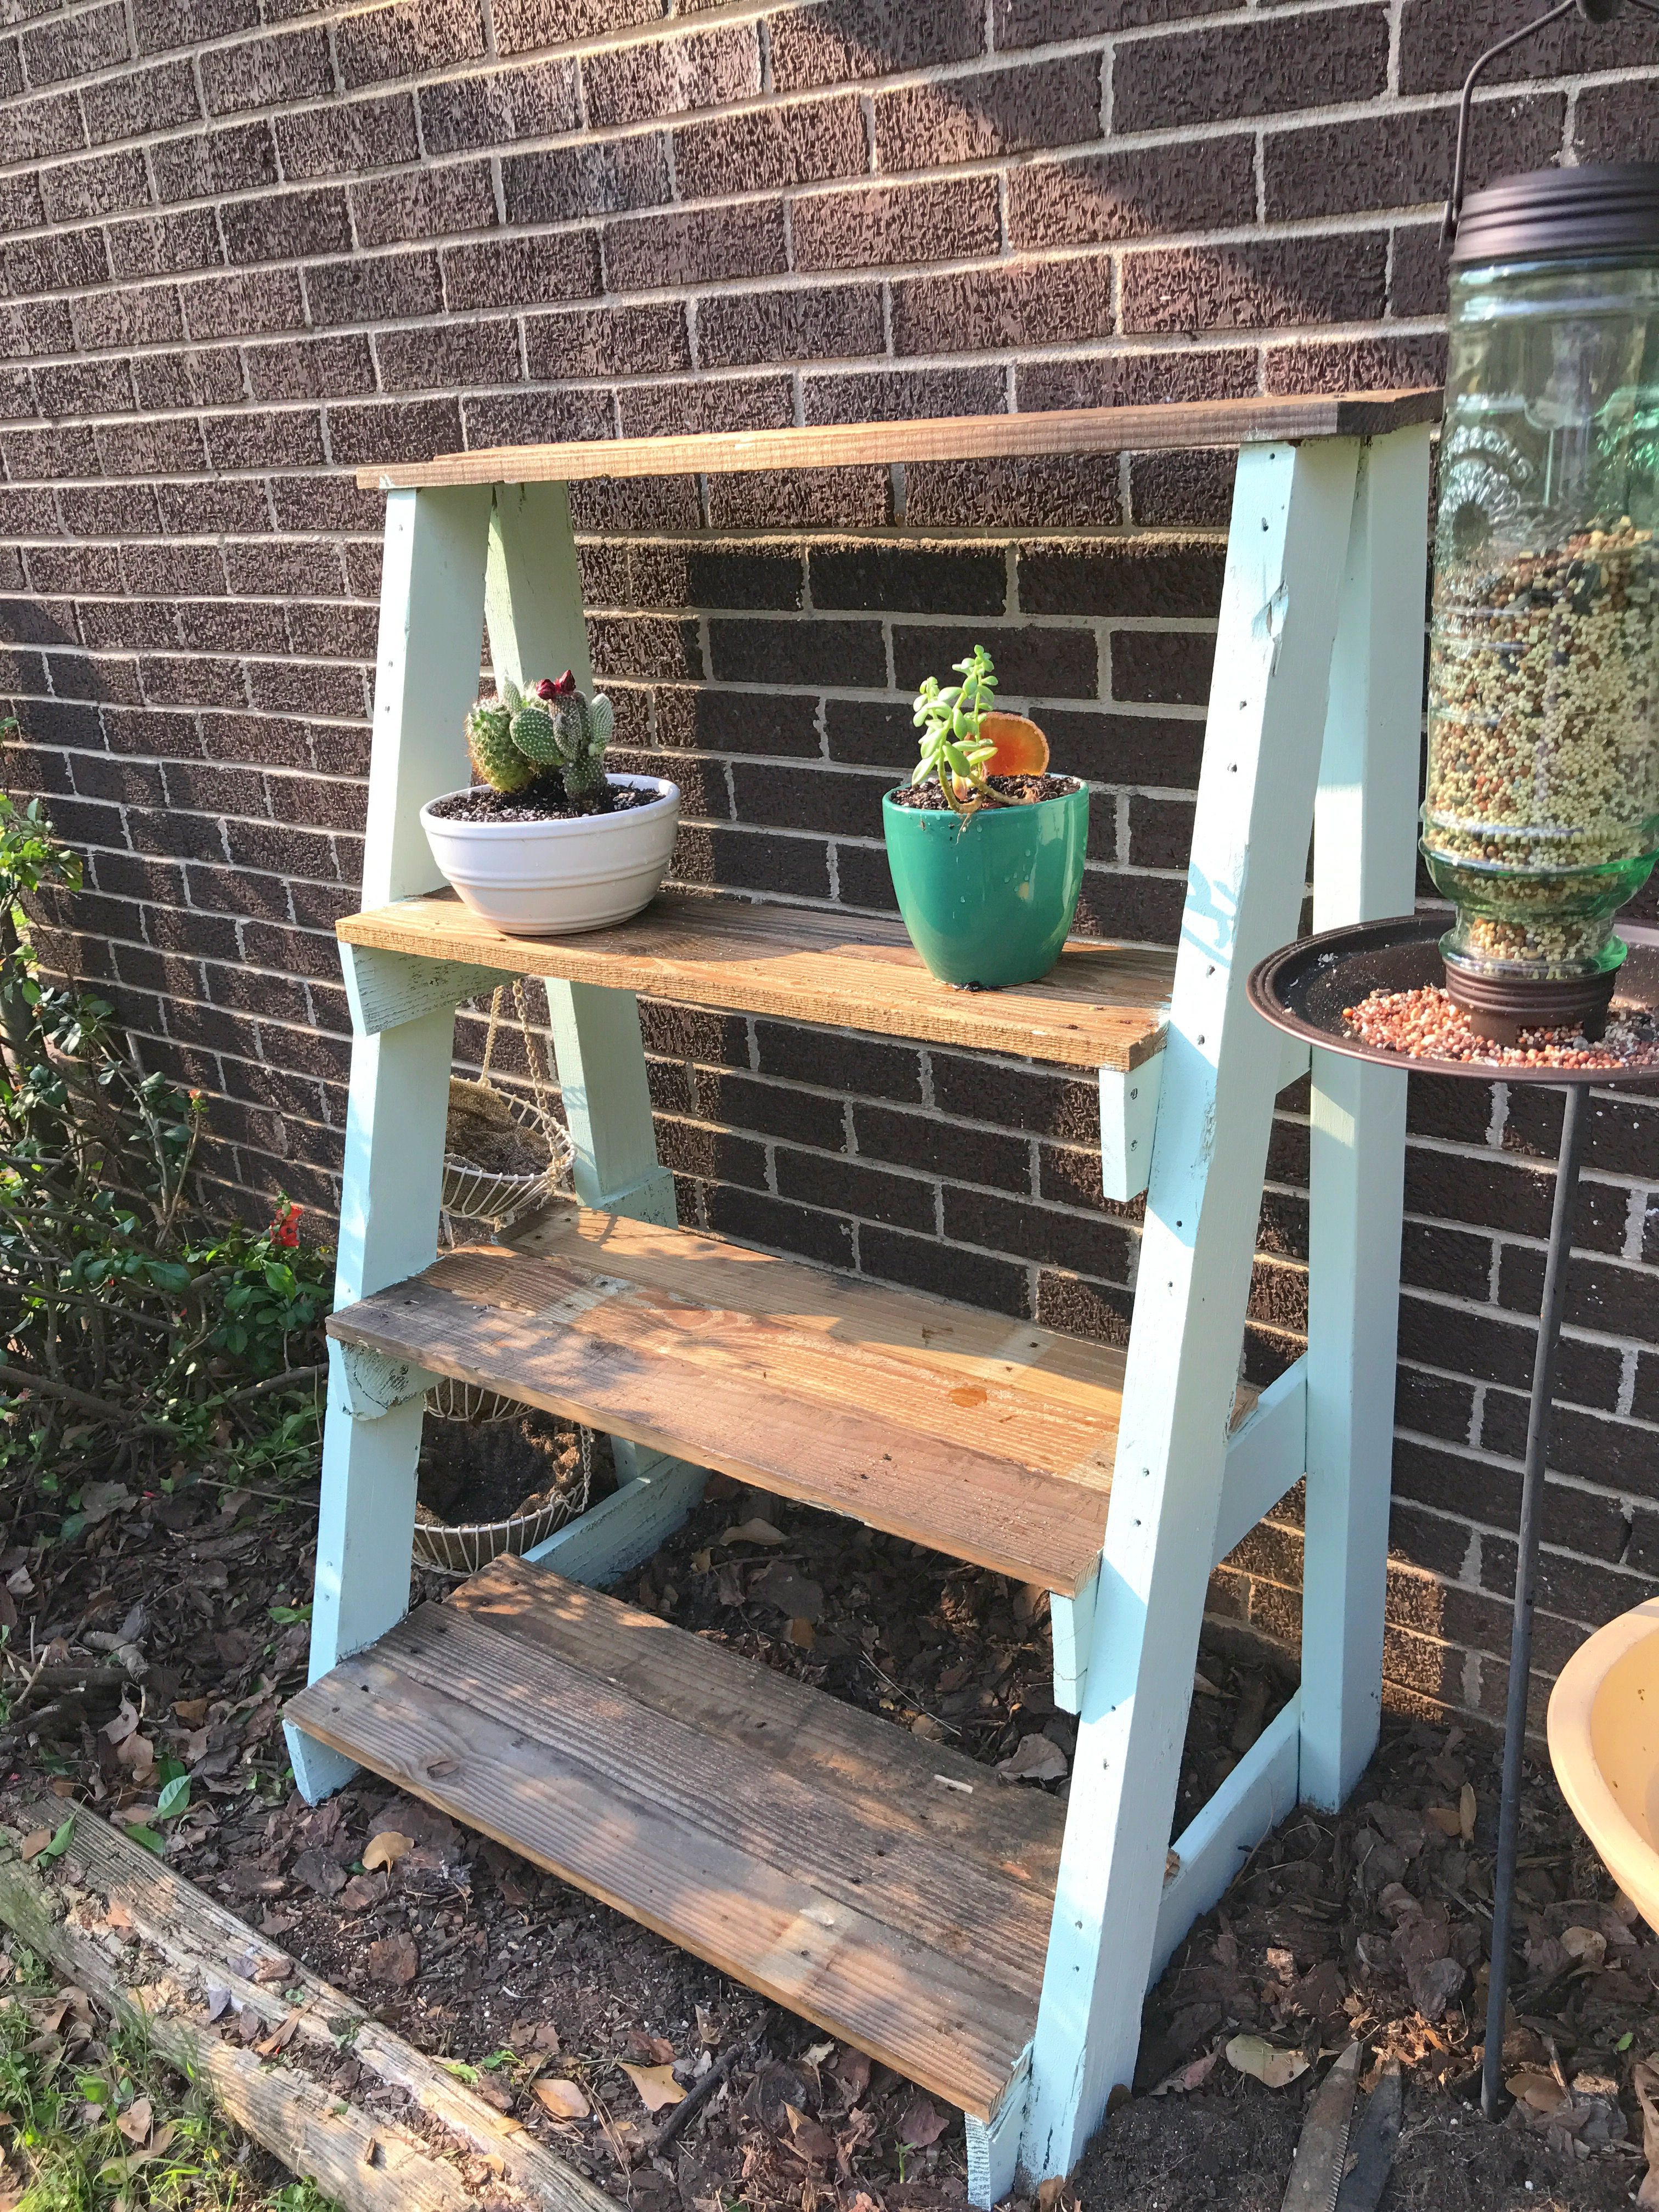 Diy Shelves For My Plants Made Only From A Pallet Garden Idea Diy Plant Shelves Pallet Project Plant Shelves Outdoor Diy Plant Stand Diy Plants